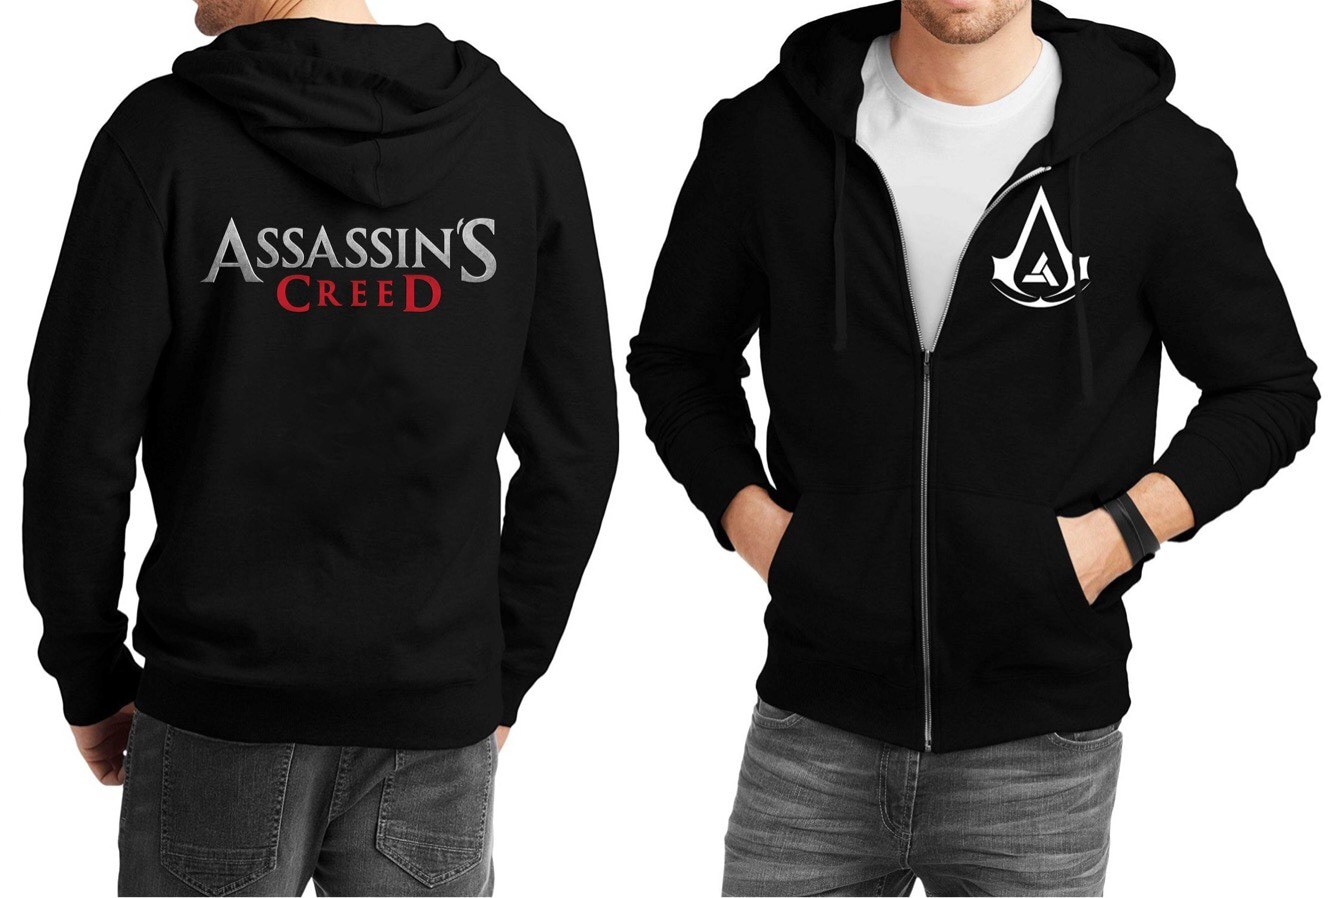 Gadgets 360's Assassin's Creed Merchandise Giveaway - Day 2